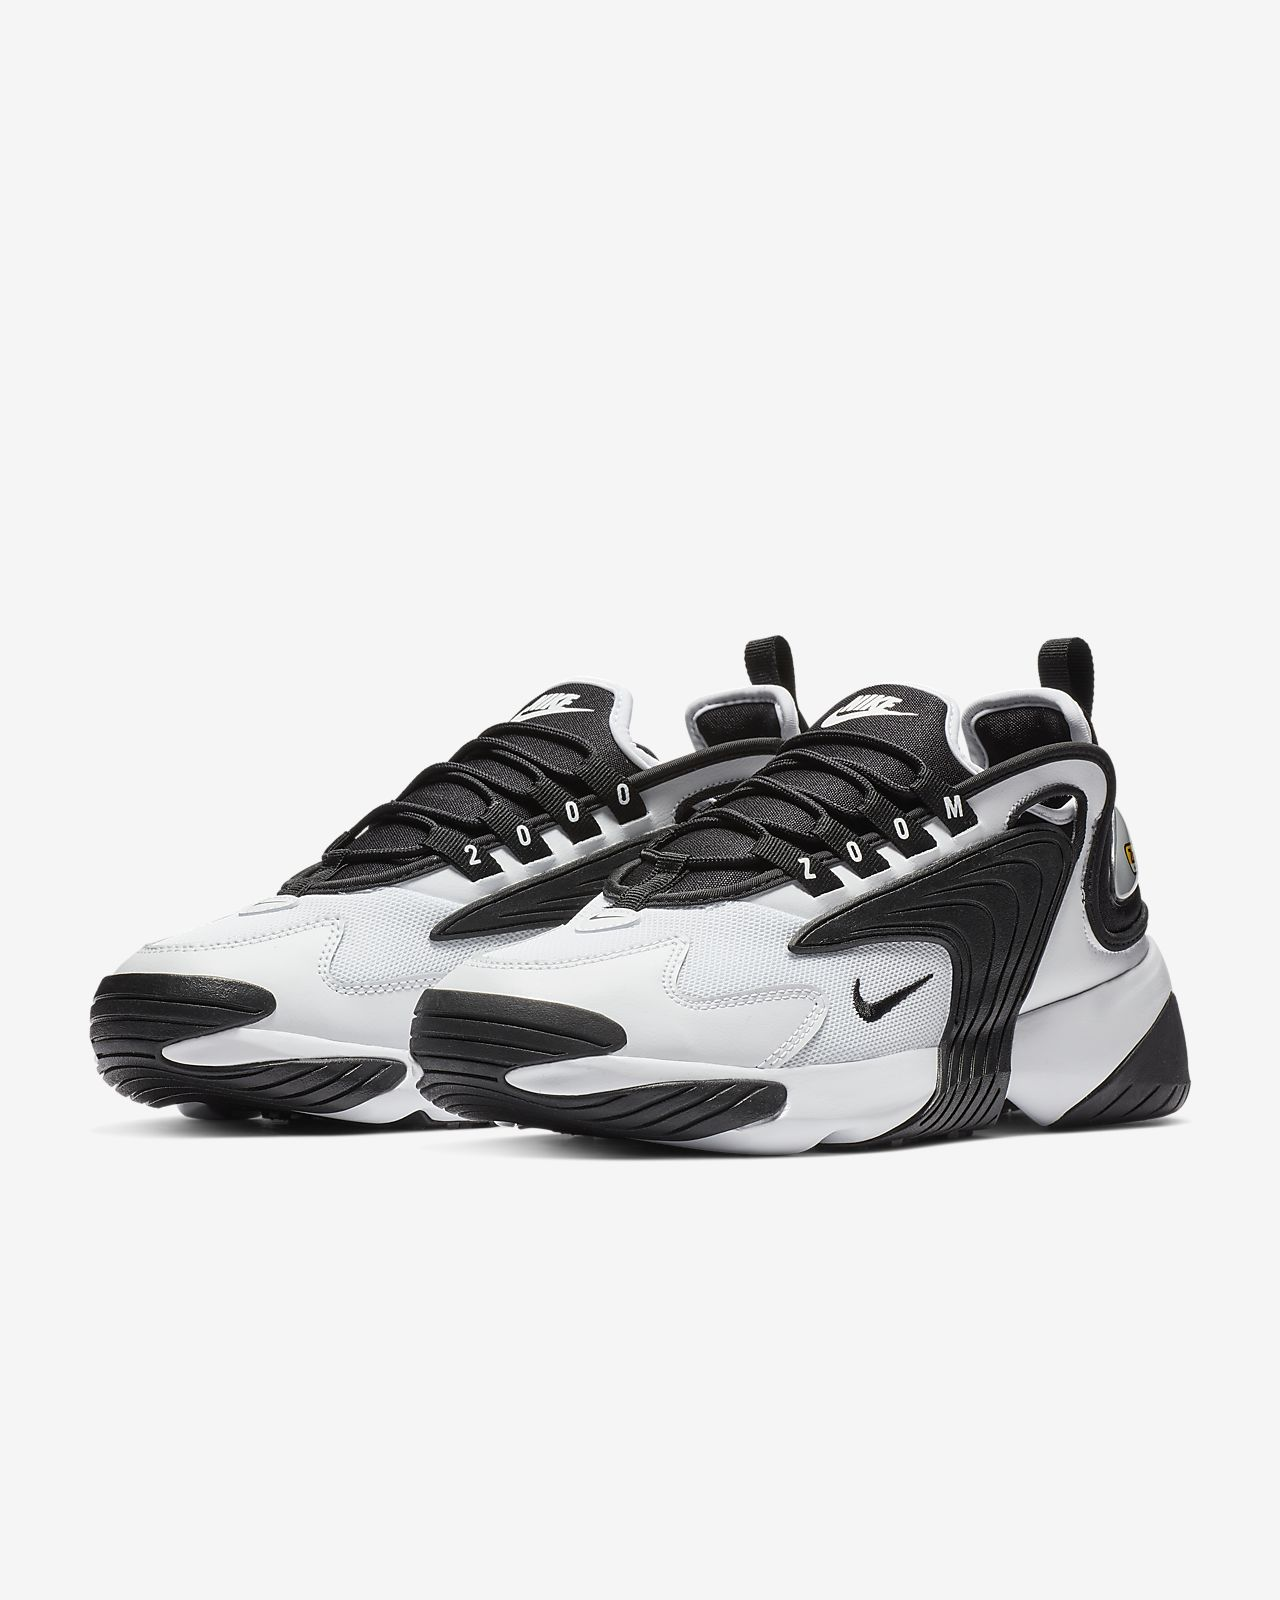 MUST BUY! NIKE ZOOM 2K